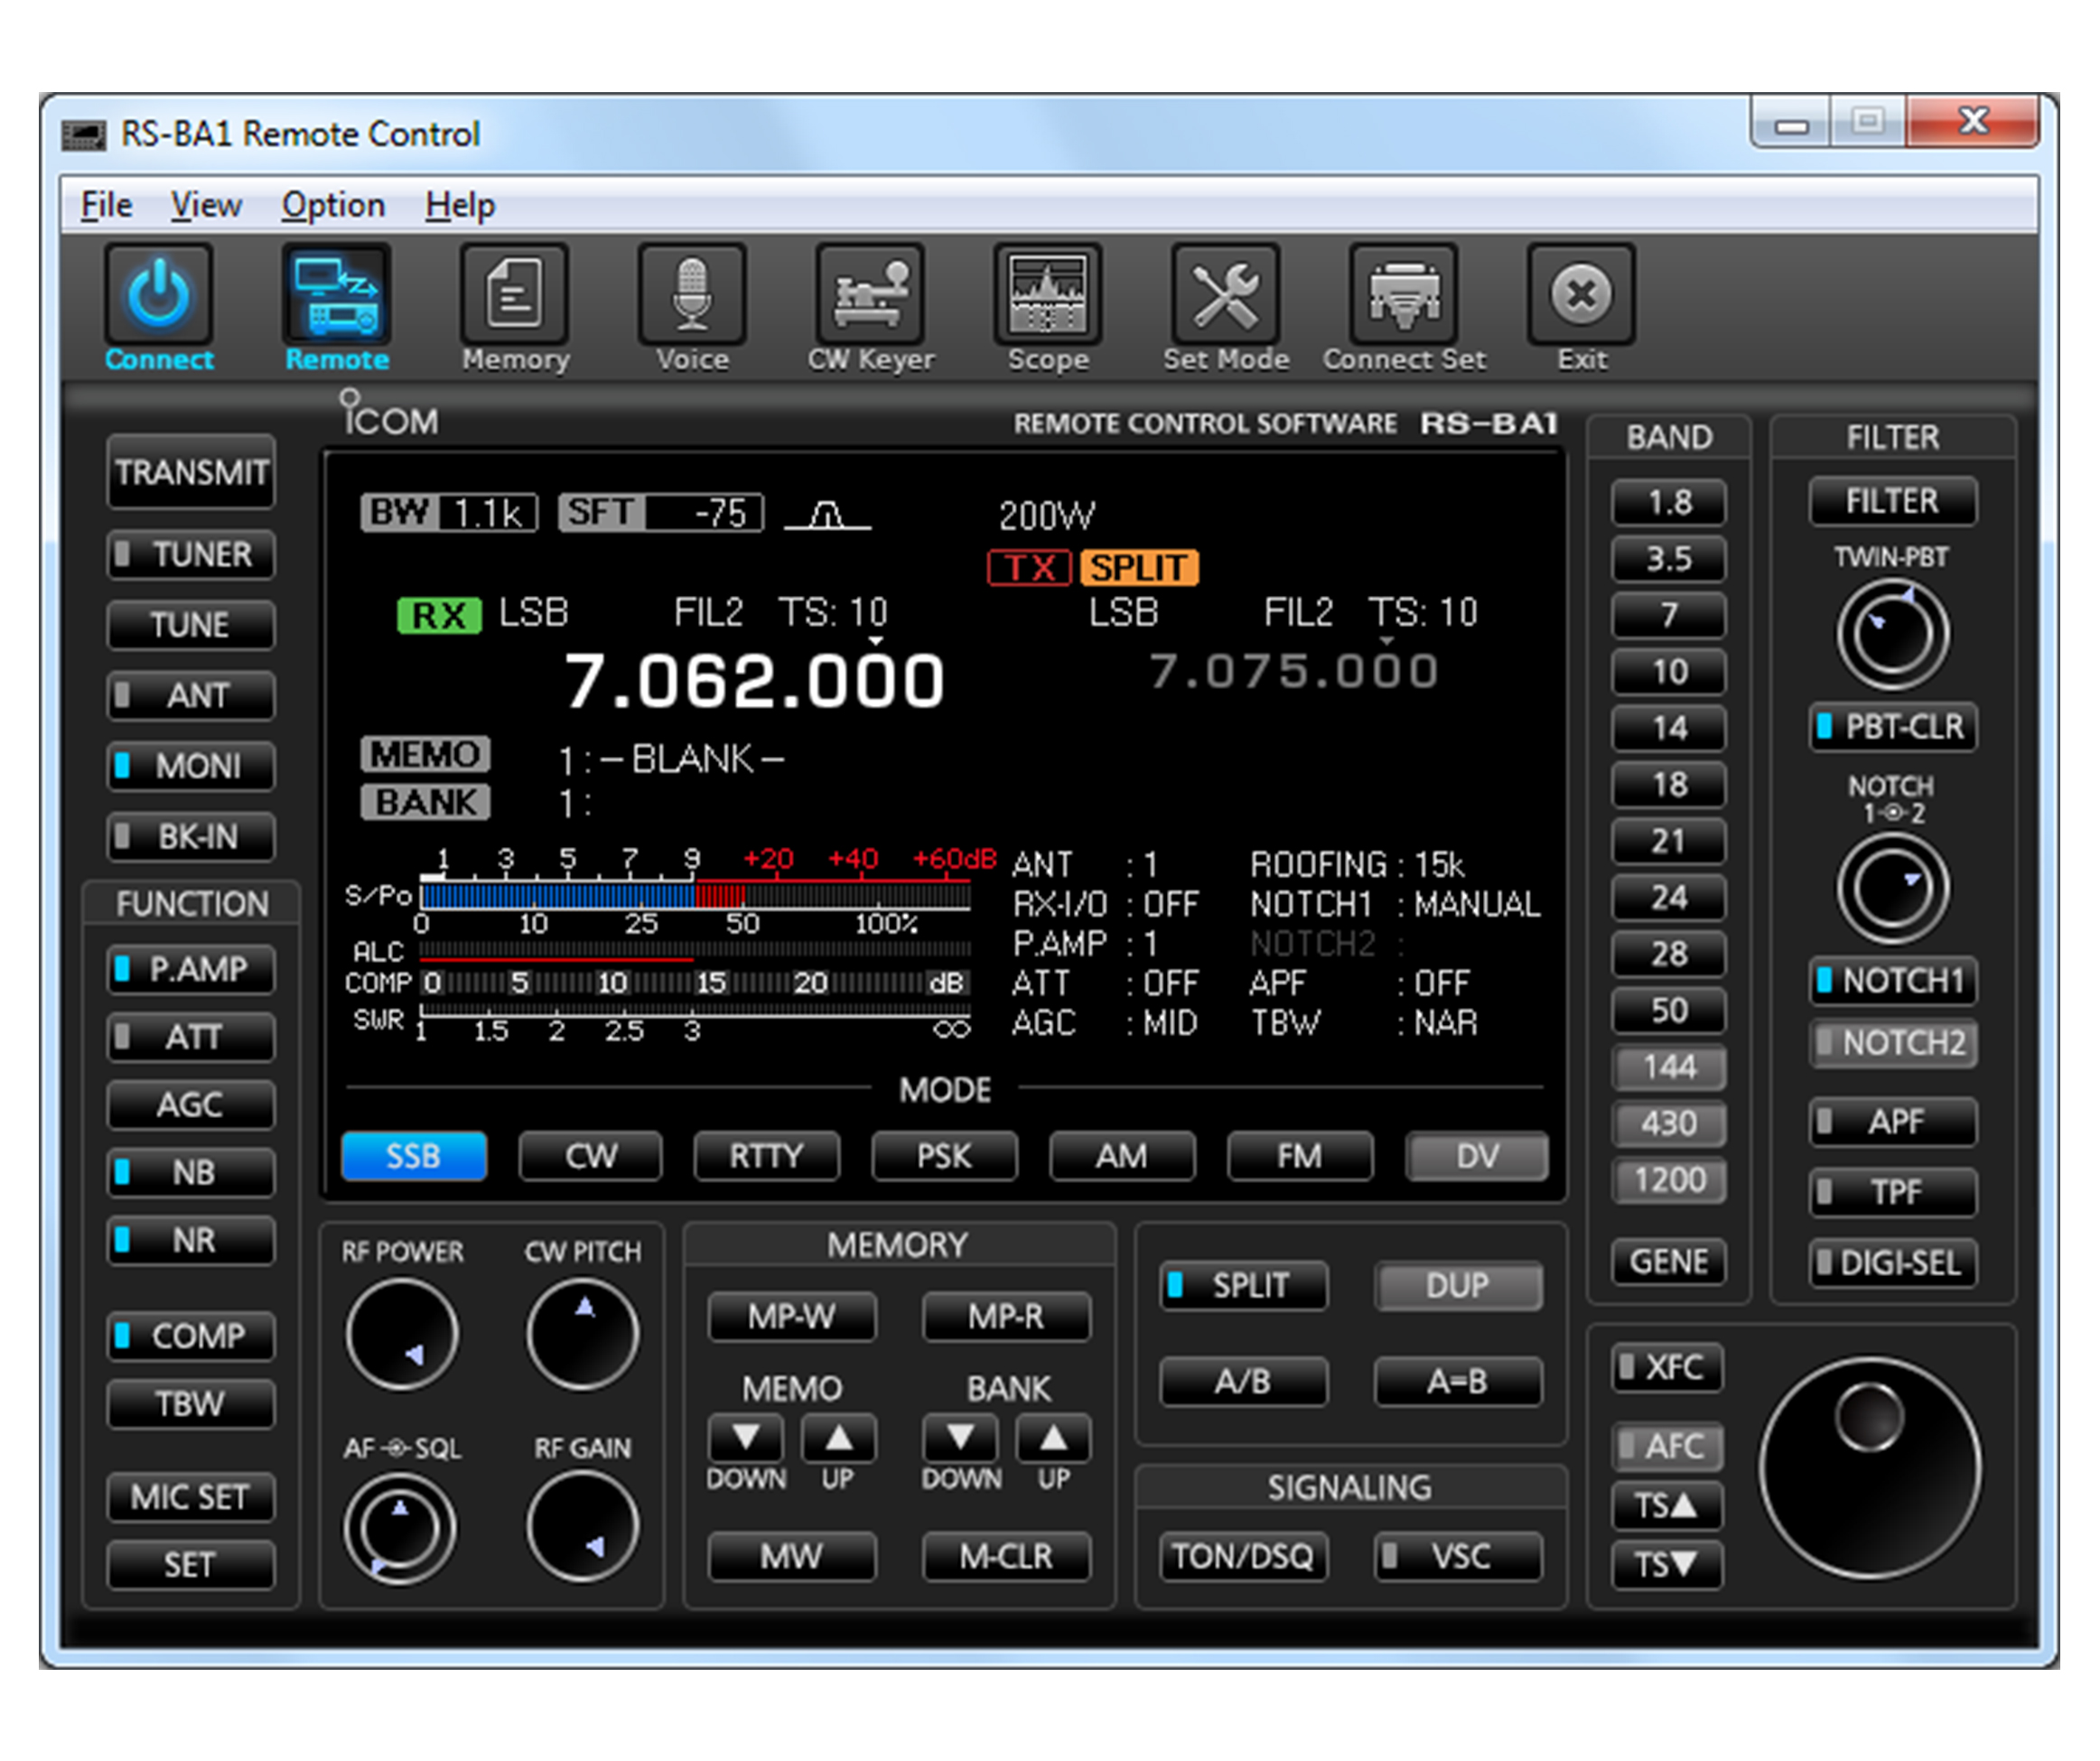 RS-BA1 IP Remote Control Software - Specifications - Icom America